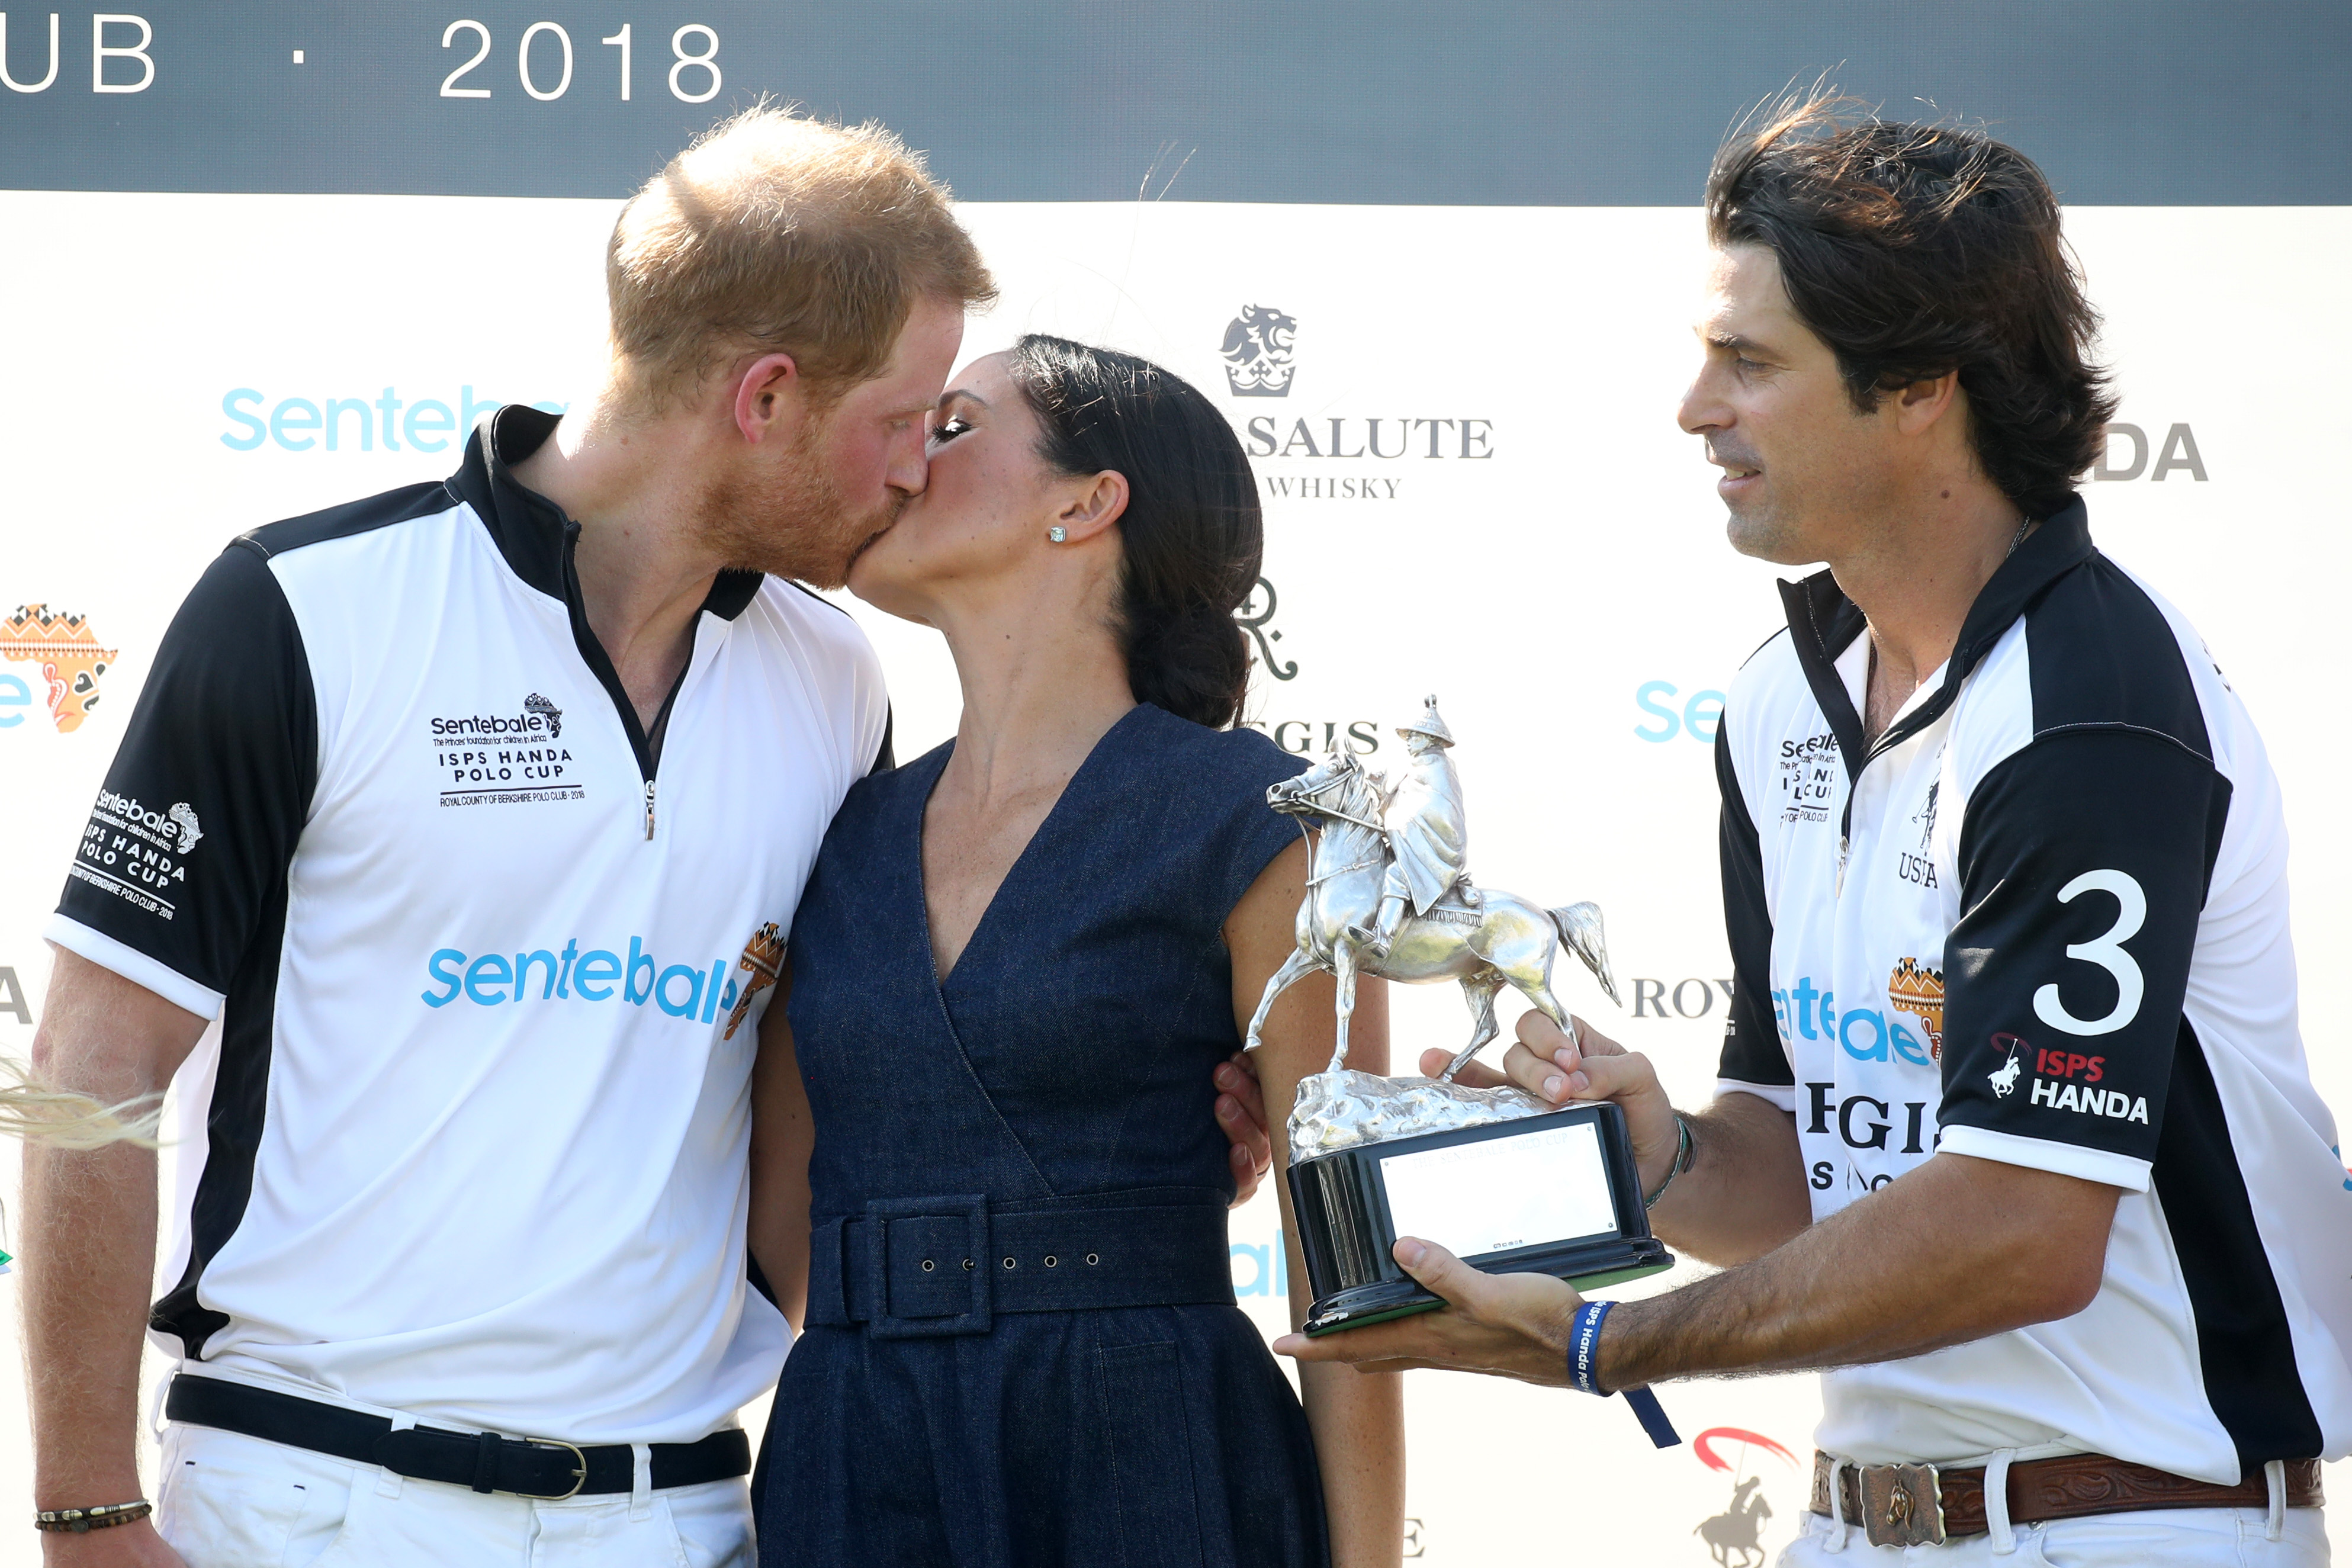 Meghan-Markle-Kisses-Prince-Harry-On-The-Lips-At-Polo-Match-But-Has-Kate-Middleton-Ever-Kissed-William-Like-That